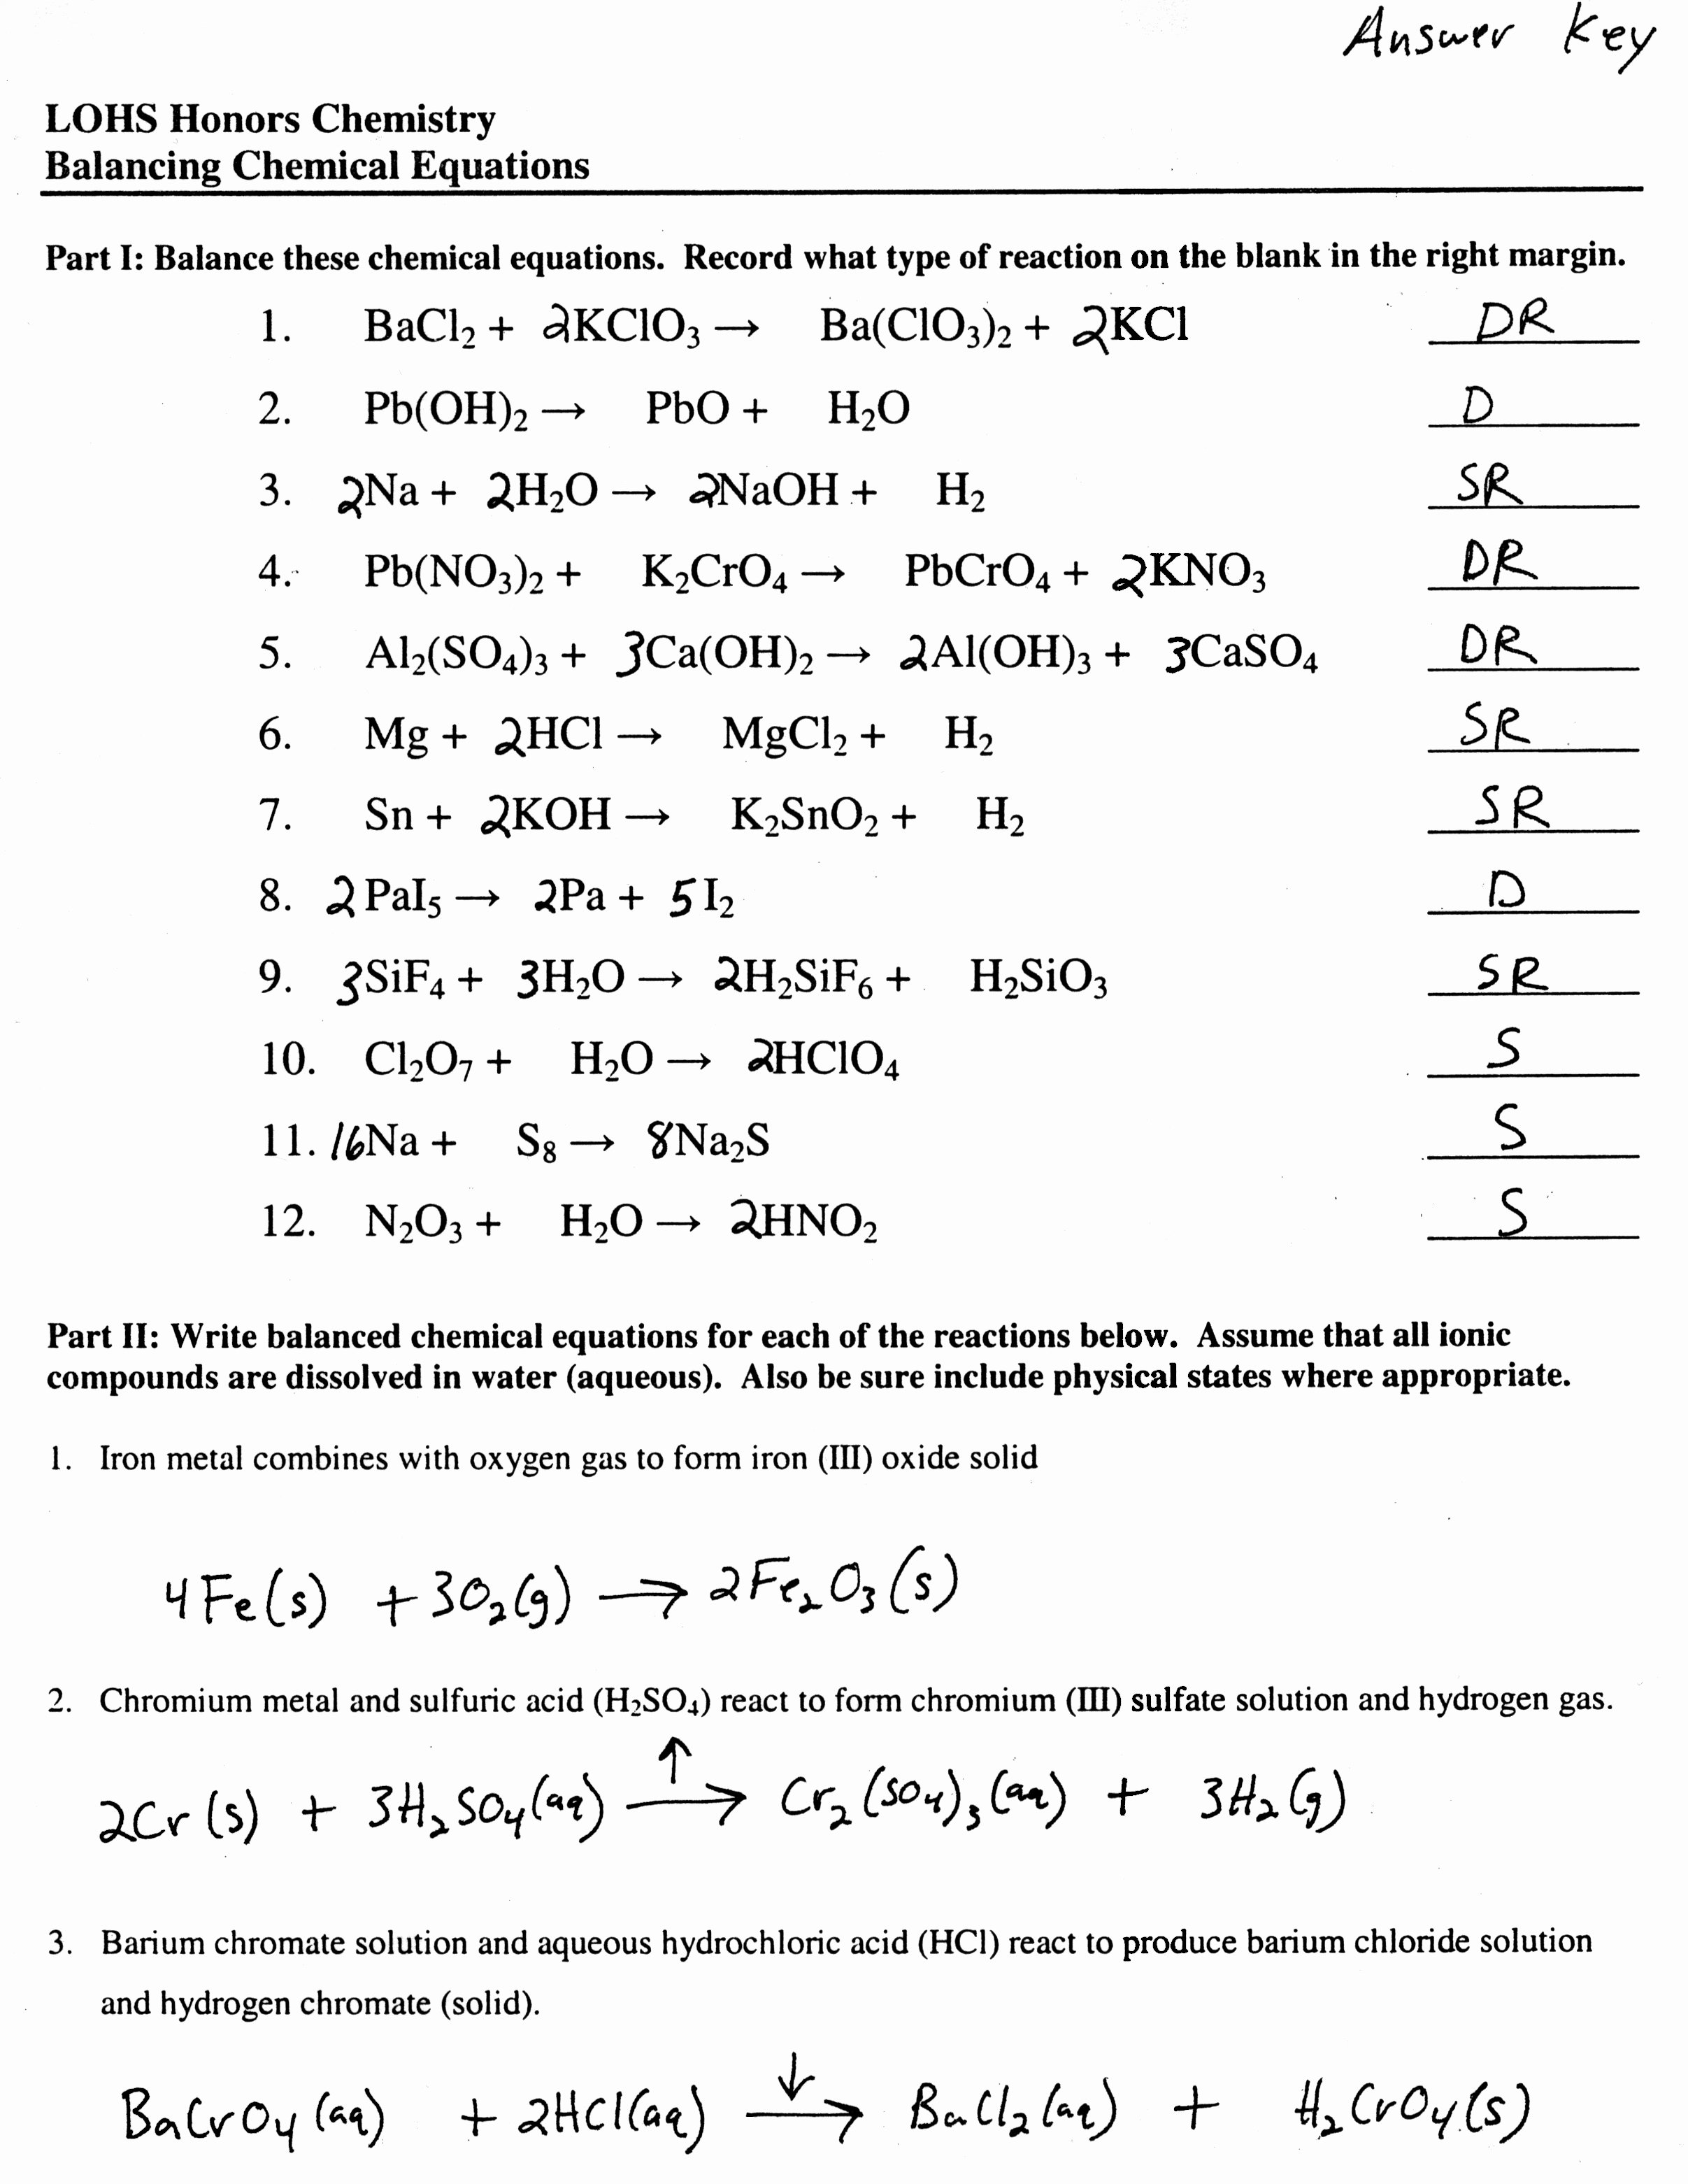 Balancing Chemical Equations Review Worksheet Answers